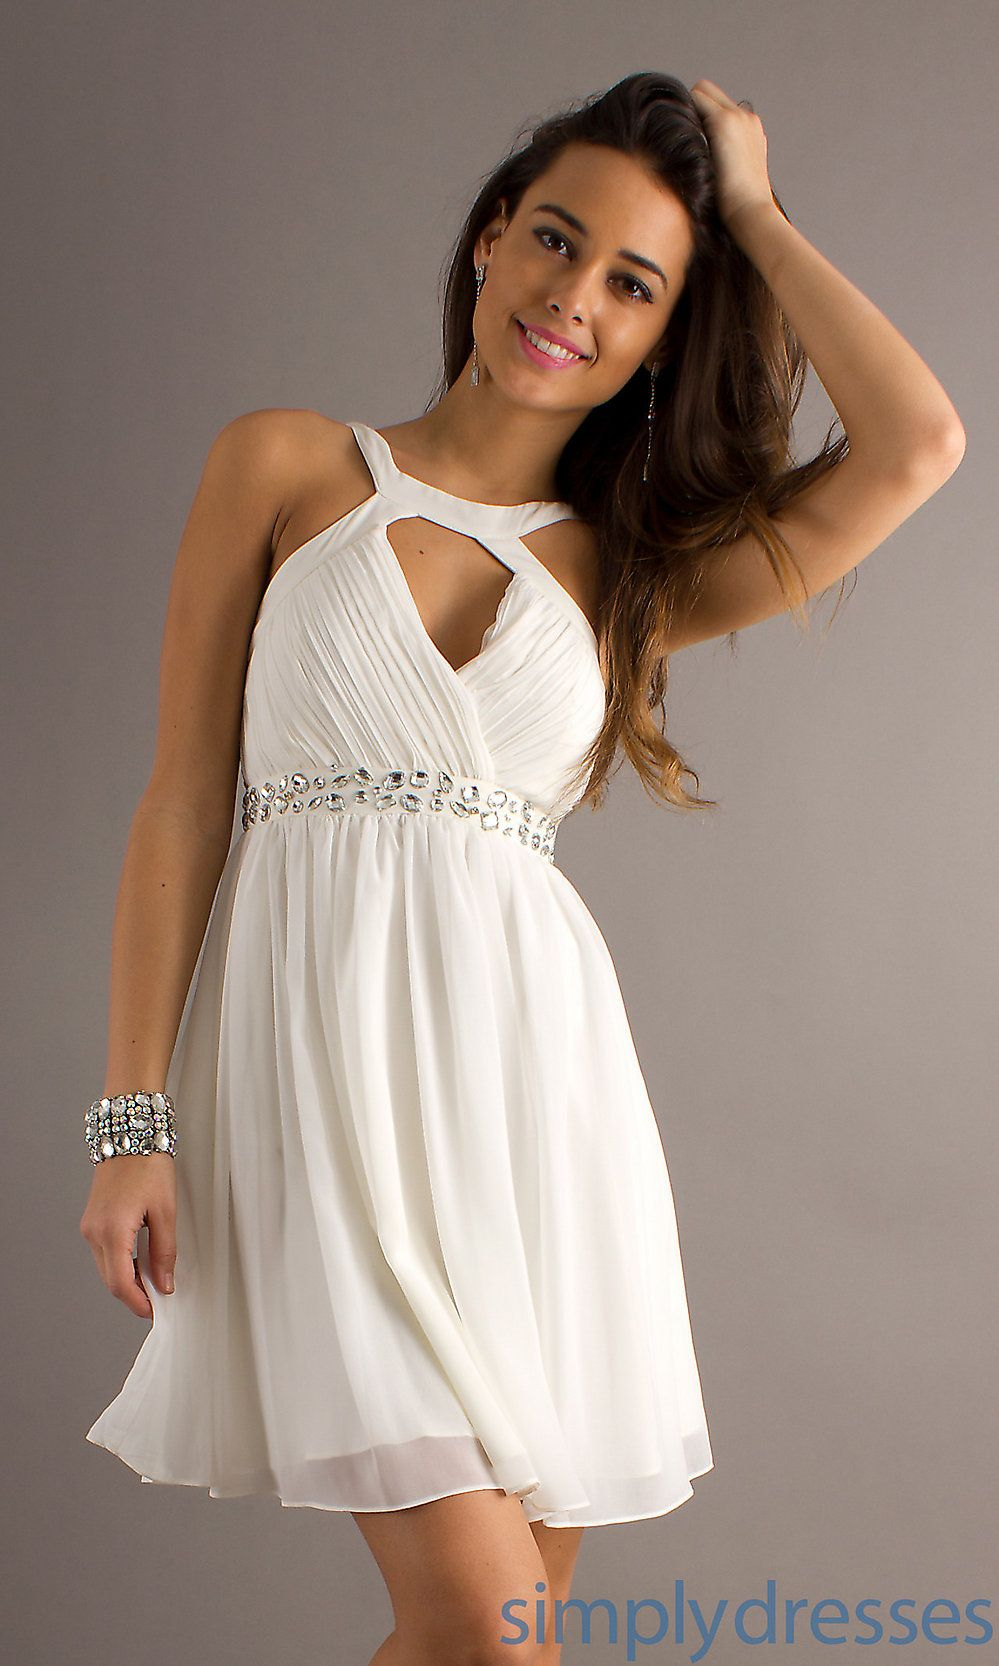 Short white dresses short sleeveless white dress janell wedding